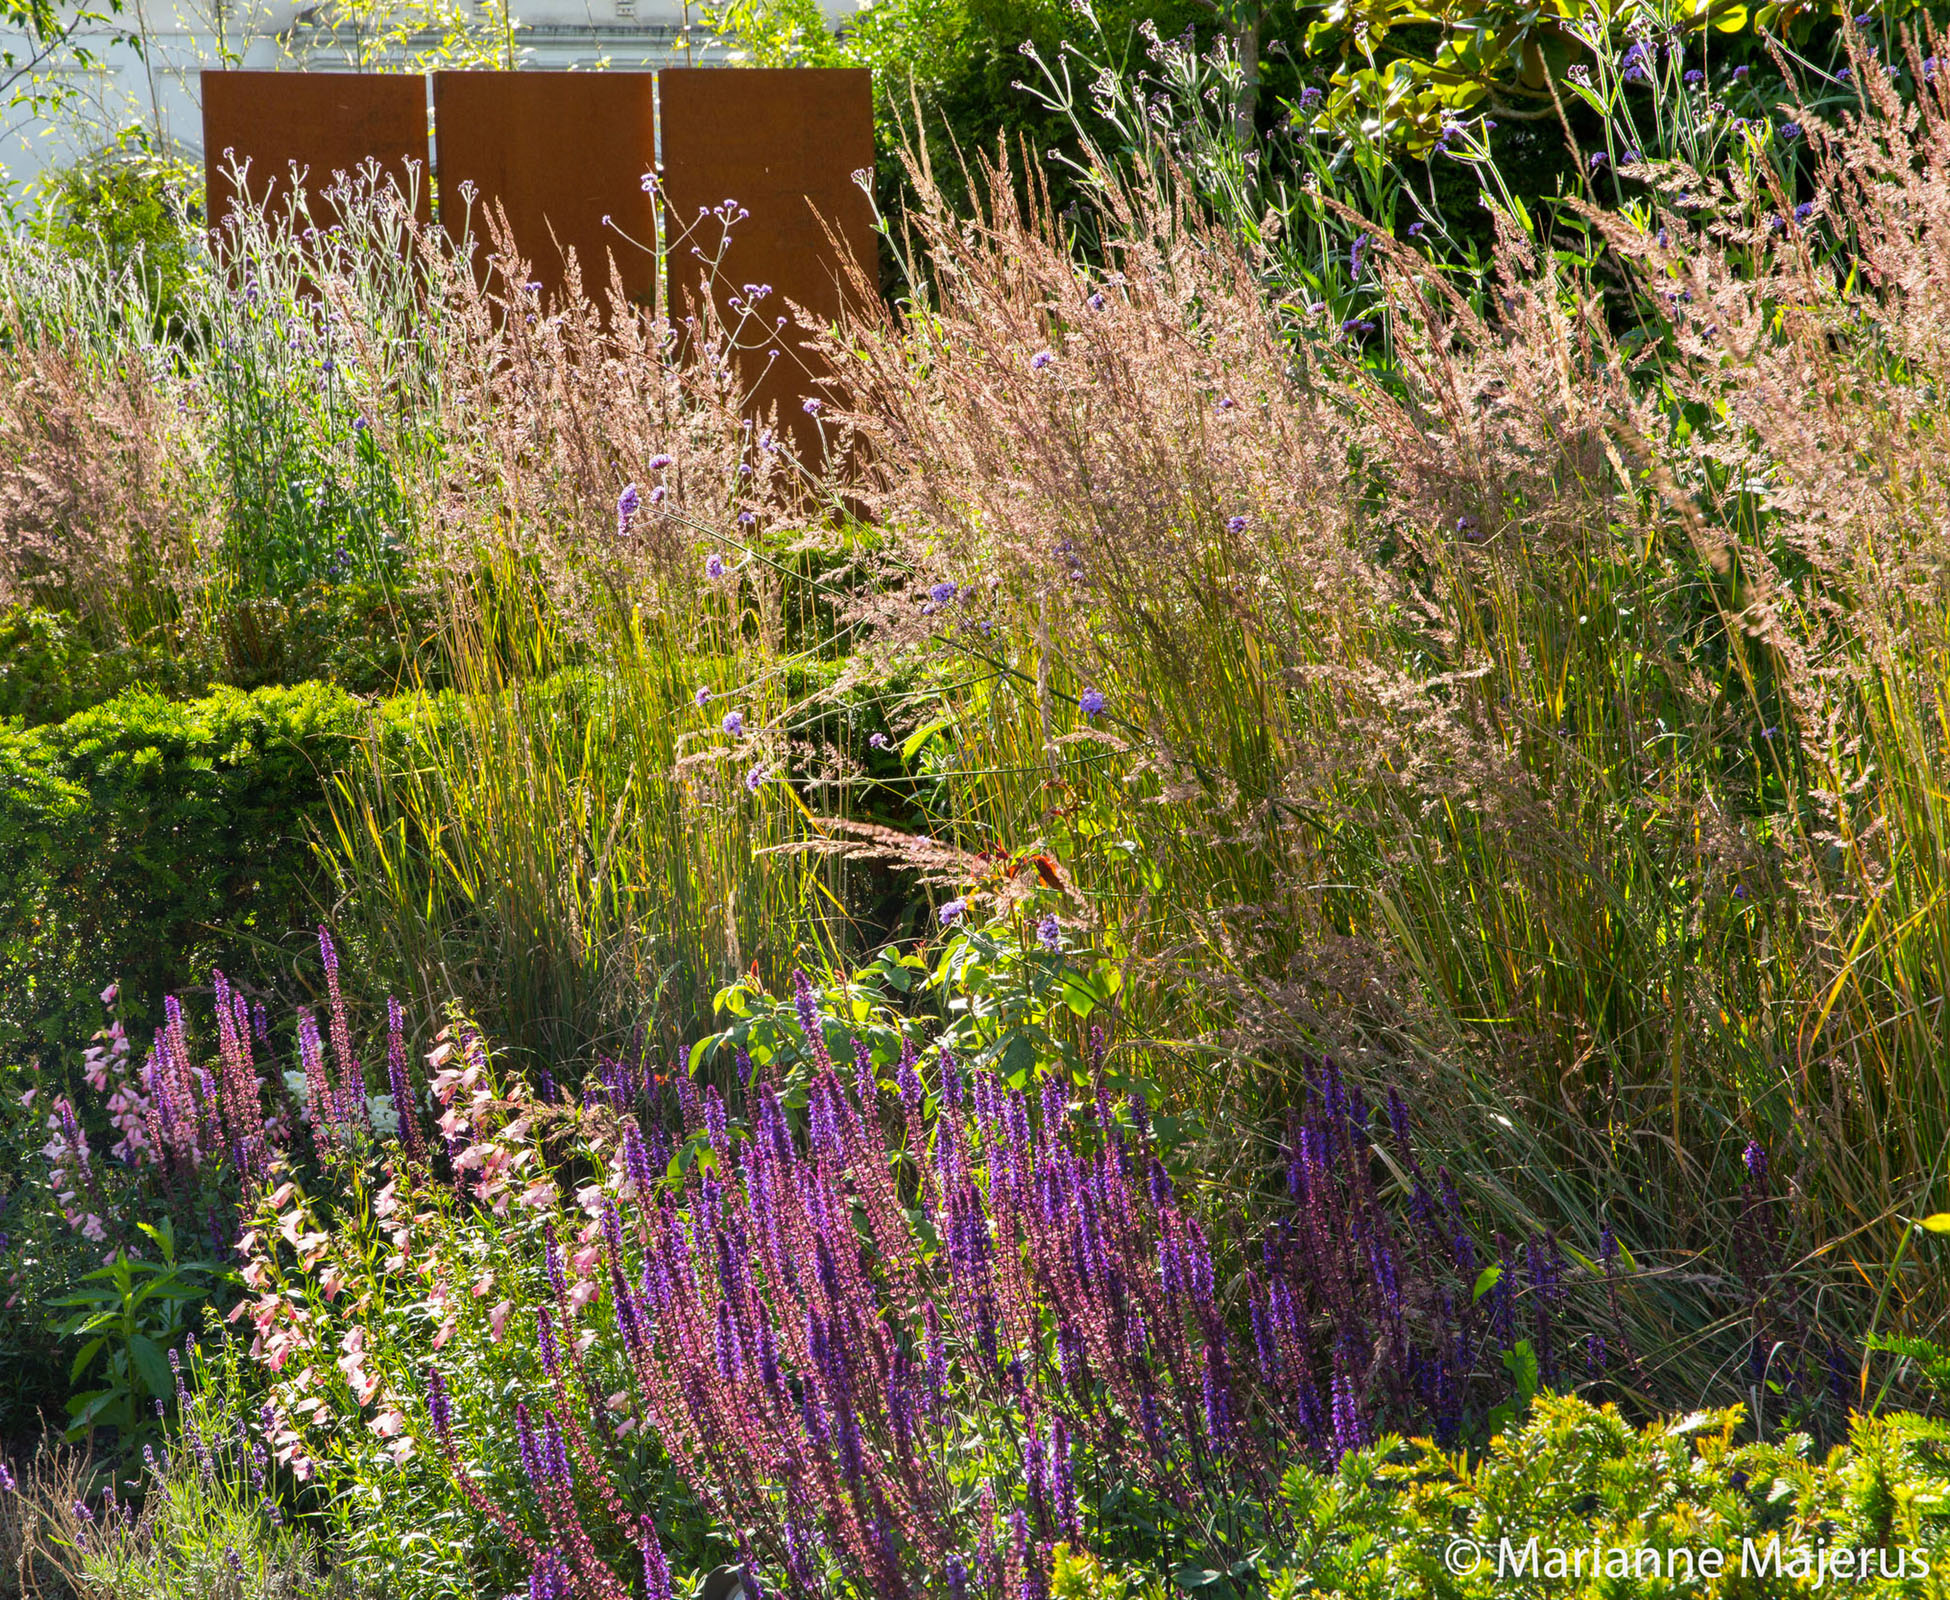 Detail of the planting in this North London garden where soft pinks merge with the mature grasses, Calamagrostis 'Karl Foerster' for a wilder look.